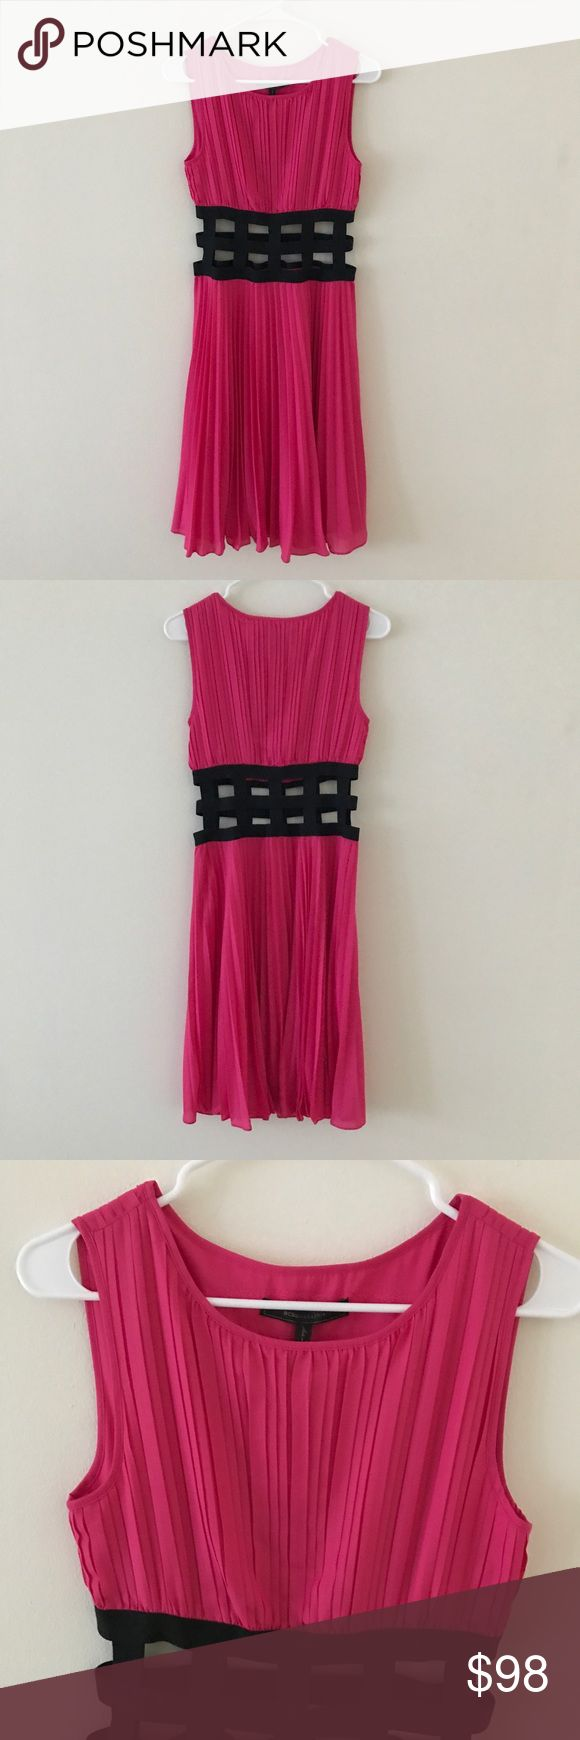 BCBGMaxAzria • Hot Pink Dress with Cutout Pattern BCBGMaxAzria • BRAND NEW WITH TAGS. Originally $328. No flaws. Hot pink, pleated material. Black cutout design in the center. Lining underneath. Perfect for a night out.   ❄️ No trades. Make an offer! Discounts given on bundles. ❄️ BCBGMaxAzria Dresses